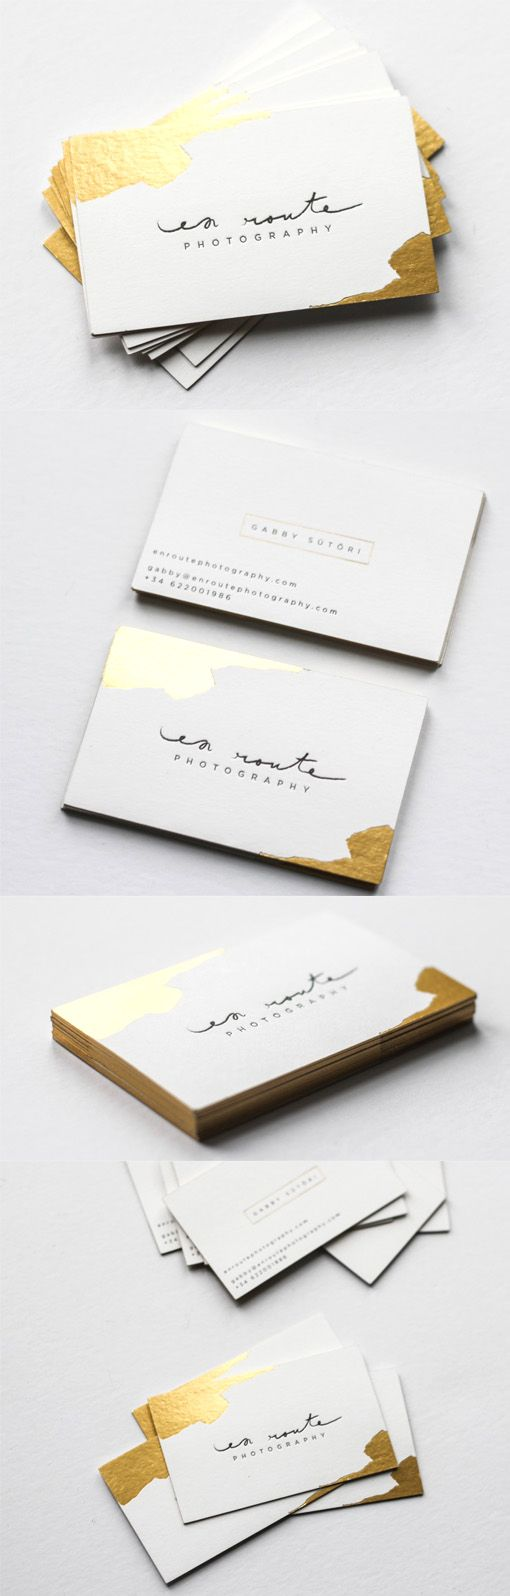 En Route Photography Business Card I Love The Use Of The Gold